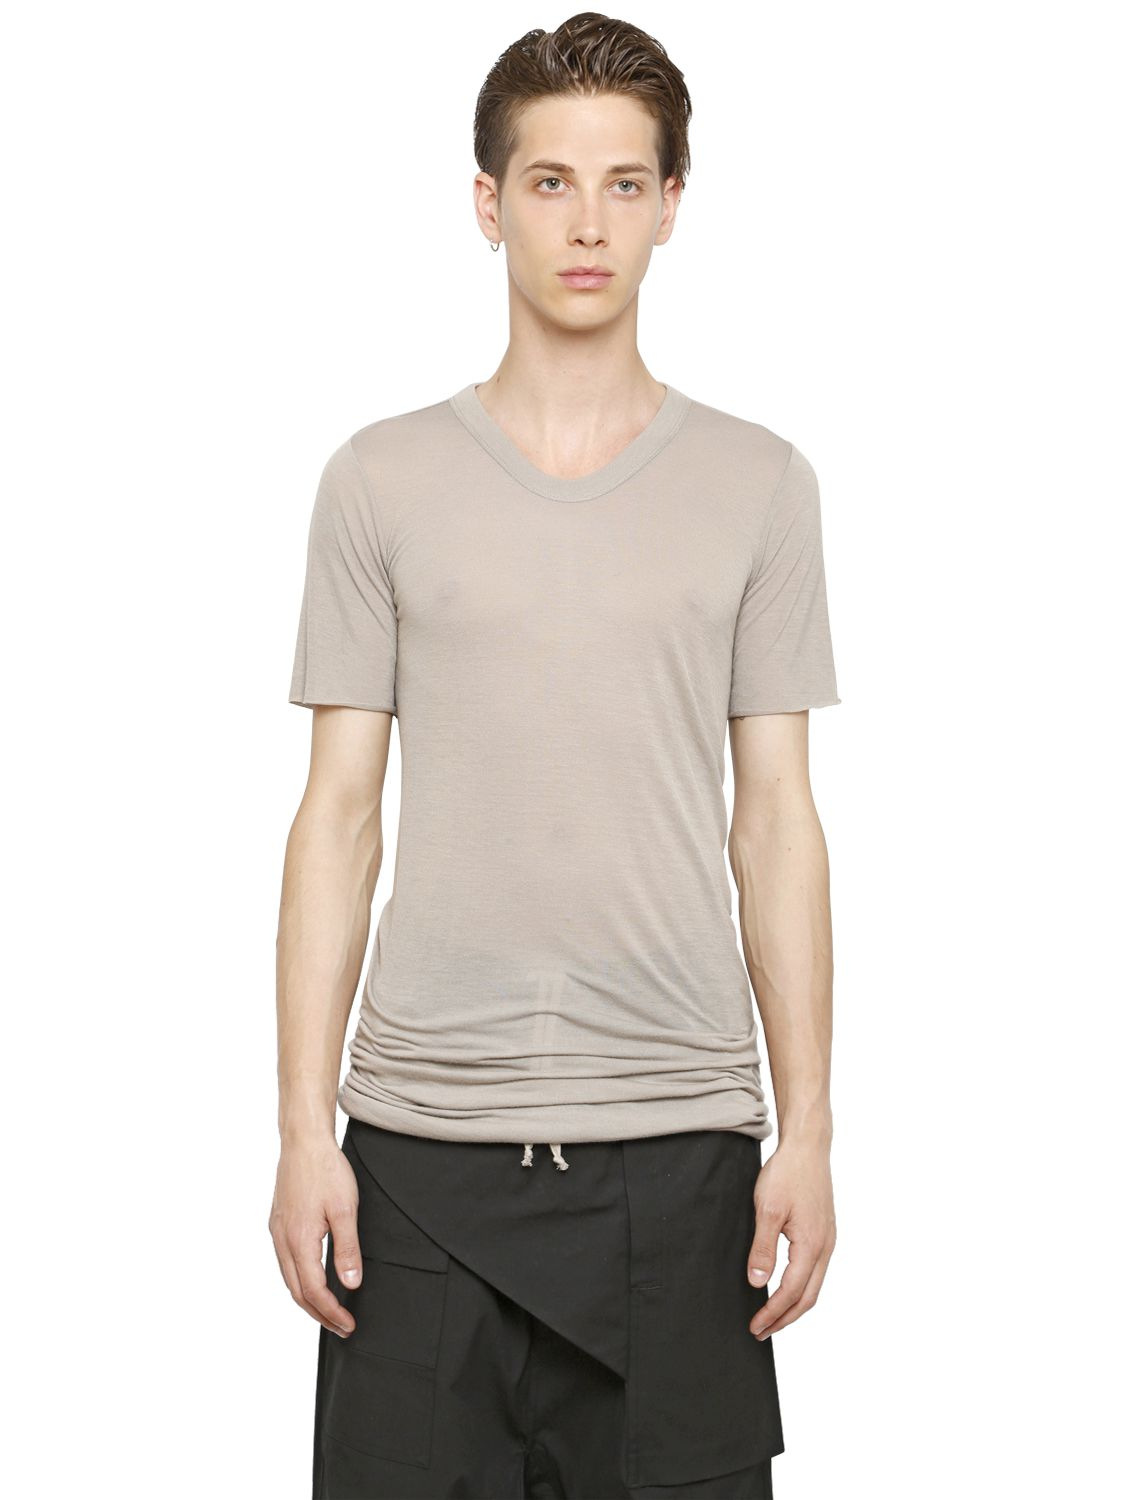 Crew-neck jersey T-shirt Rick Owens 2018 Newest Brand New Unisex Cheap Price From China Free Shipping Ebay nzWLgDlj